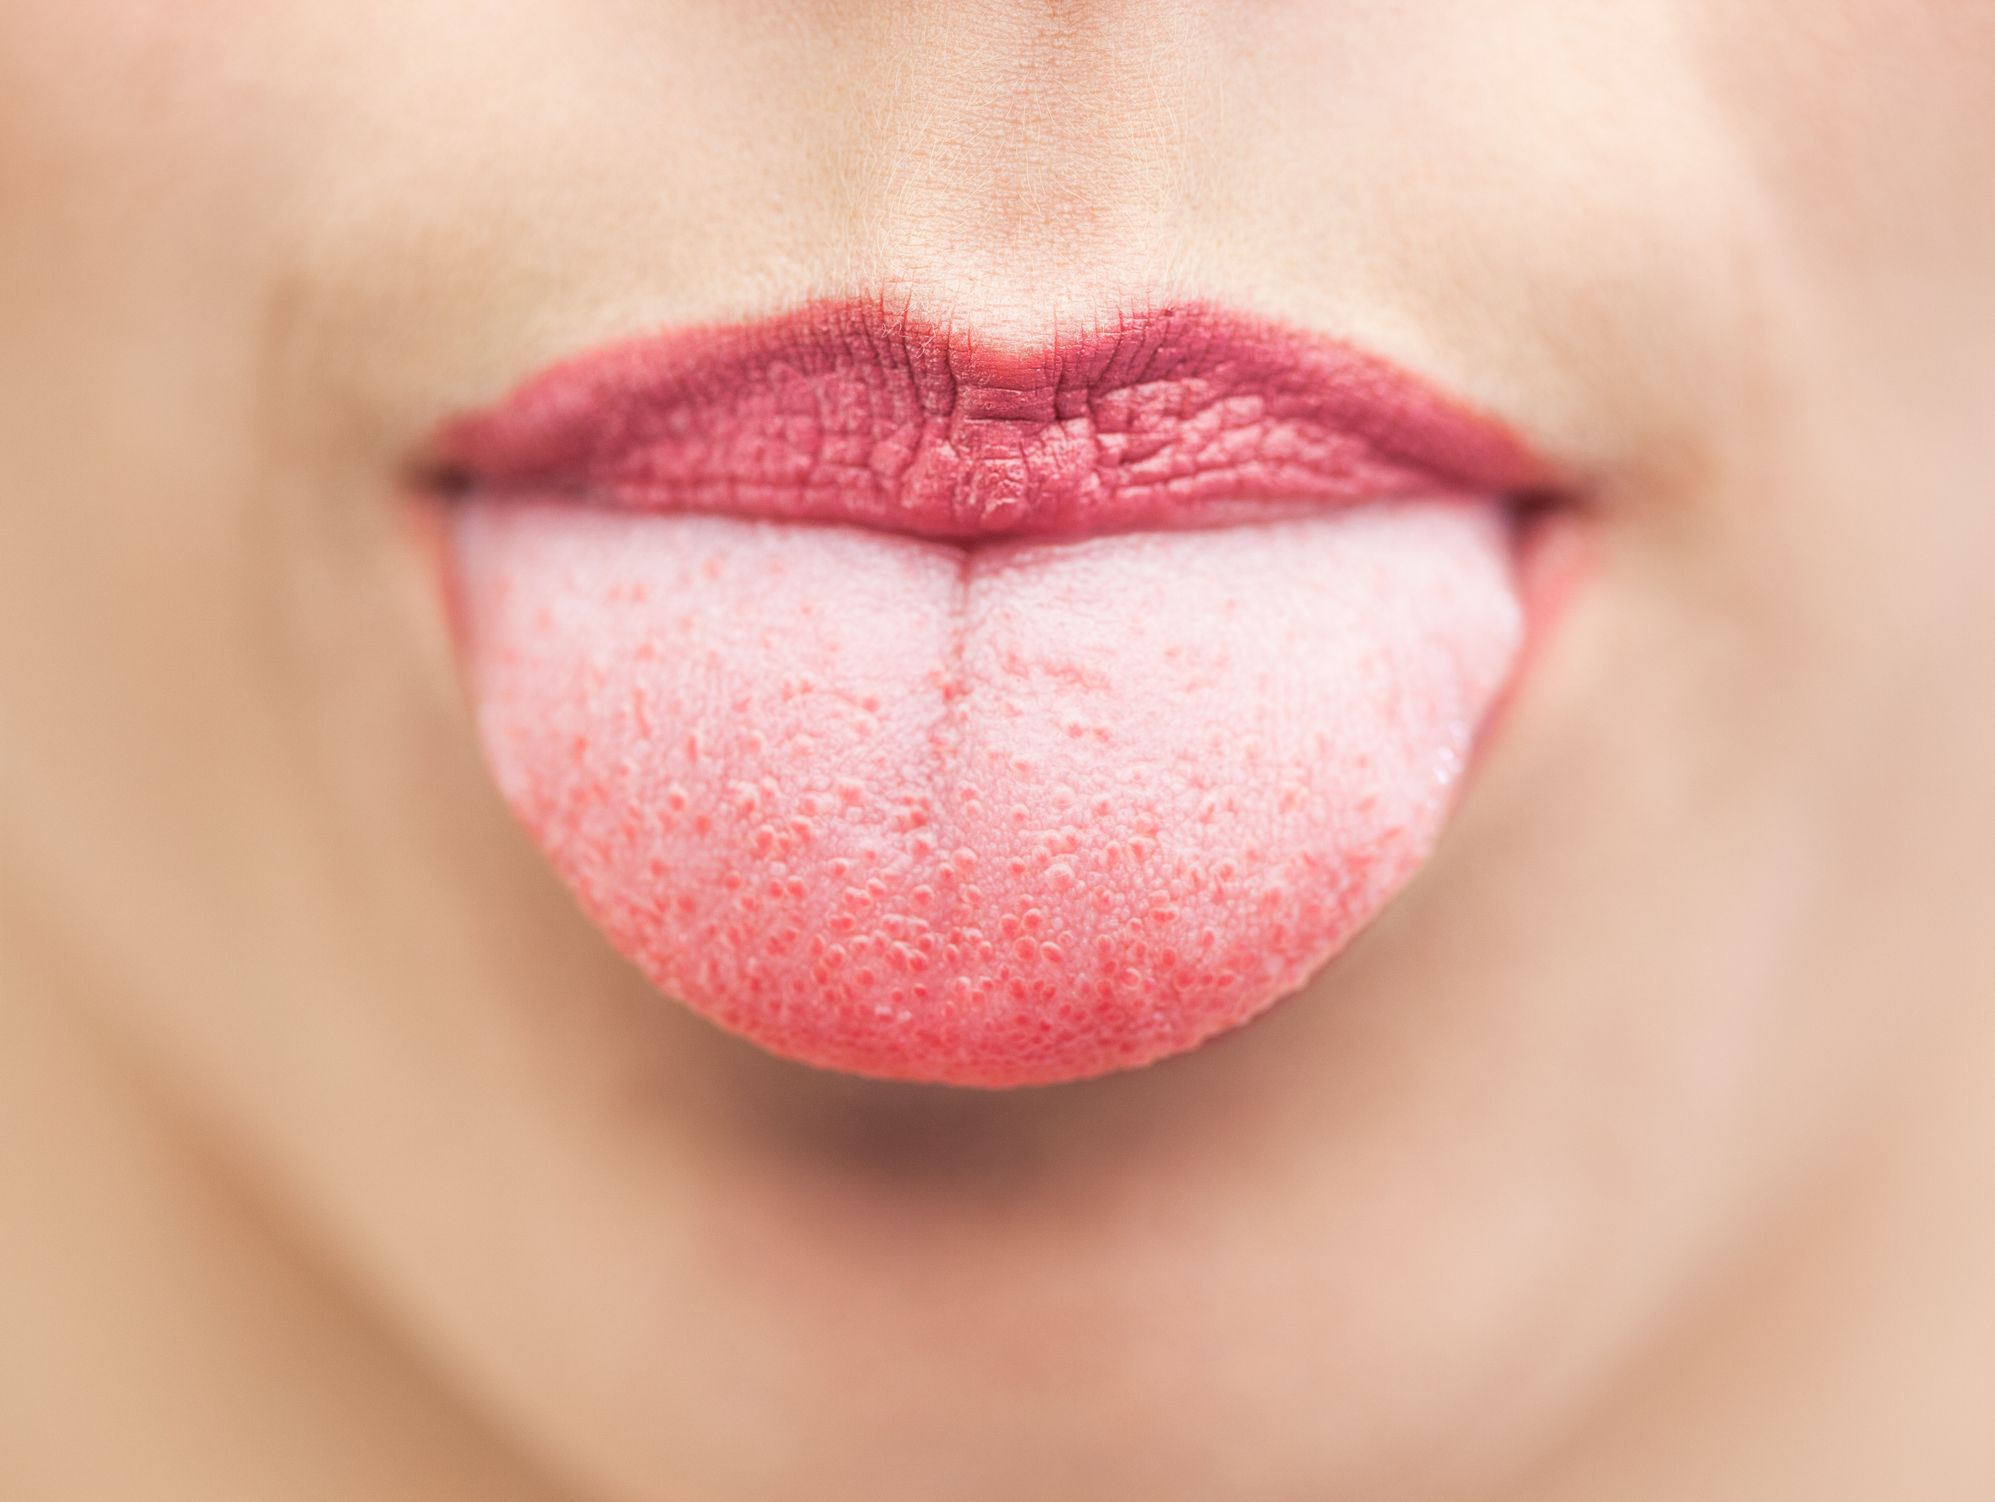 inflammation of tongue papillae)